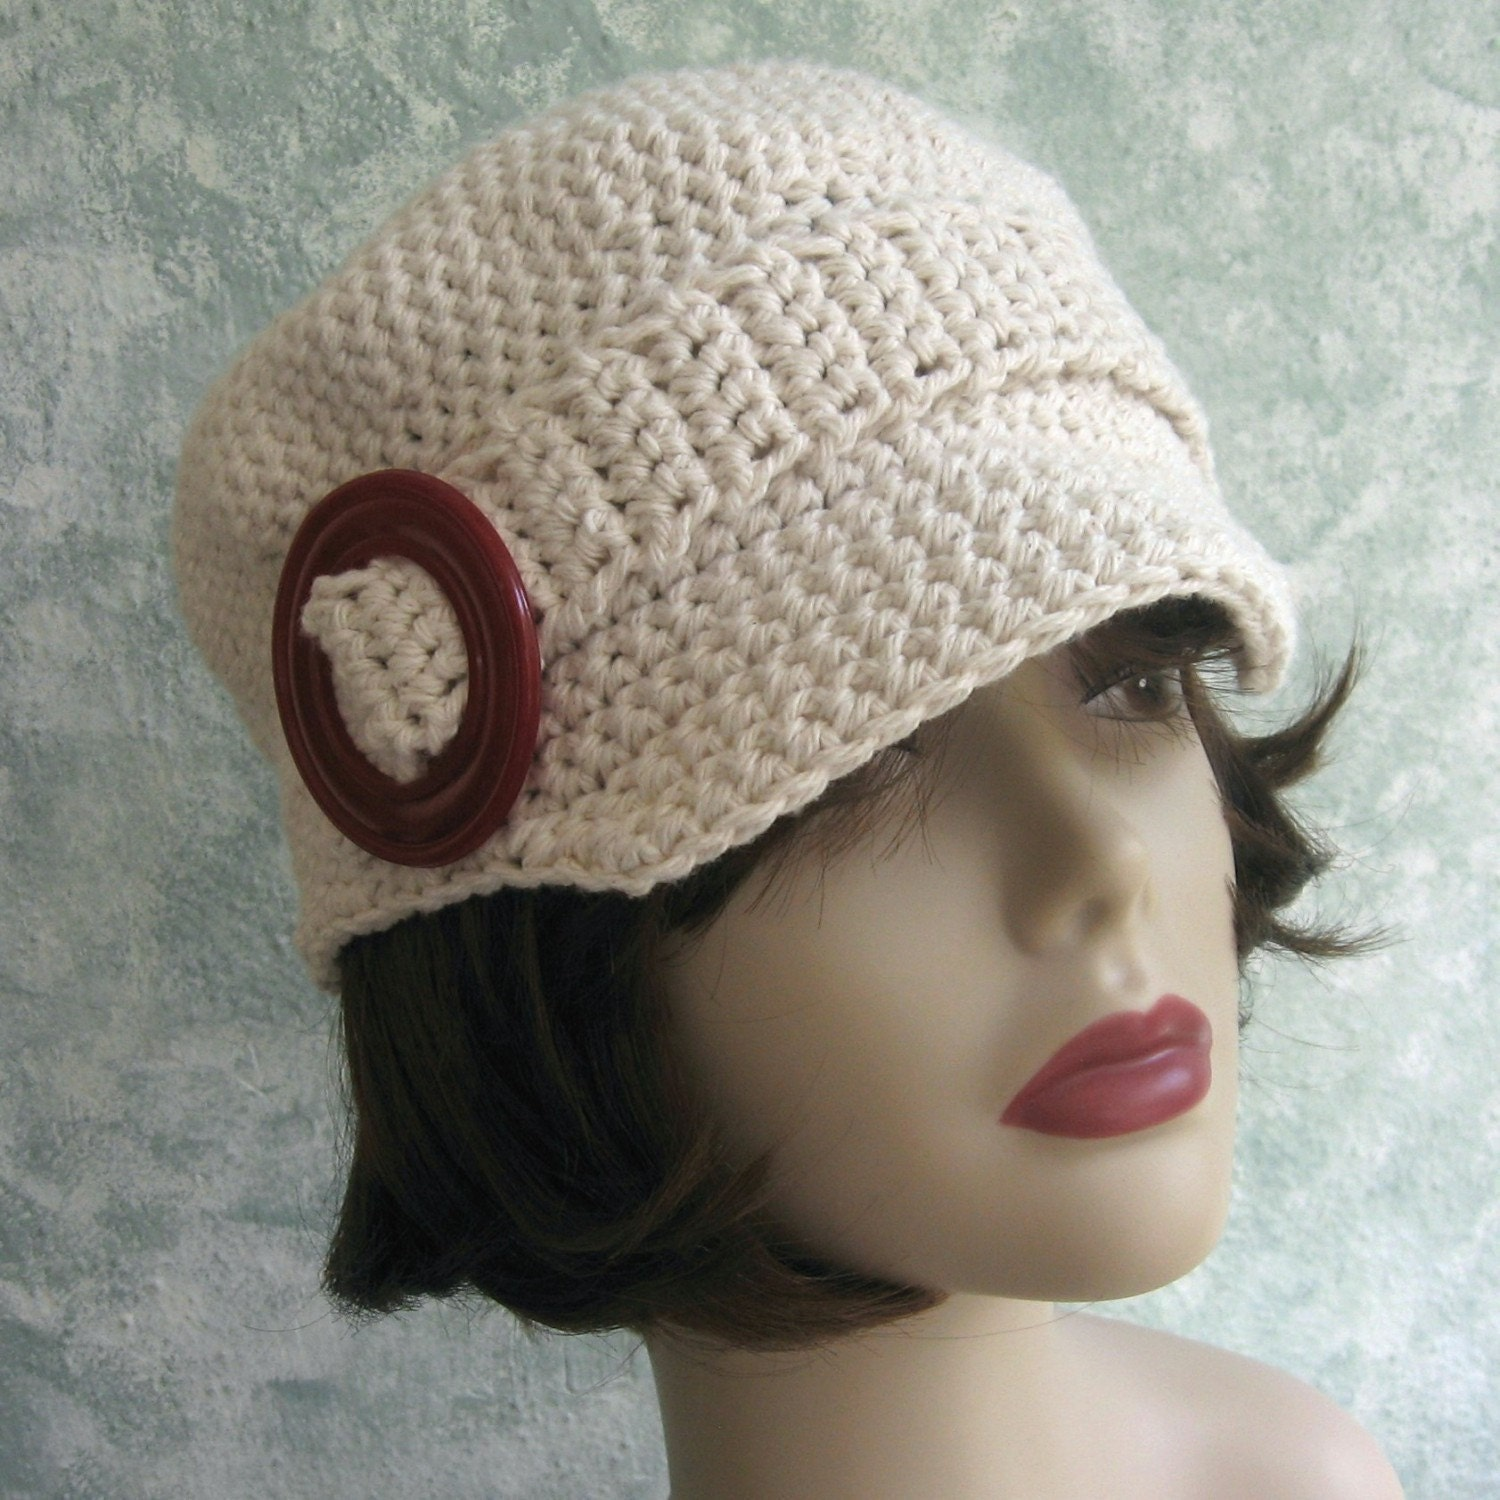 Crochet Pattern Womens Hat : Crochet Newsboy Hat Pattern Womens And Teen Sizing Cotton